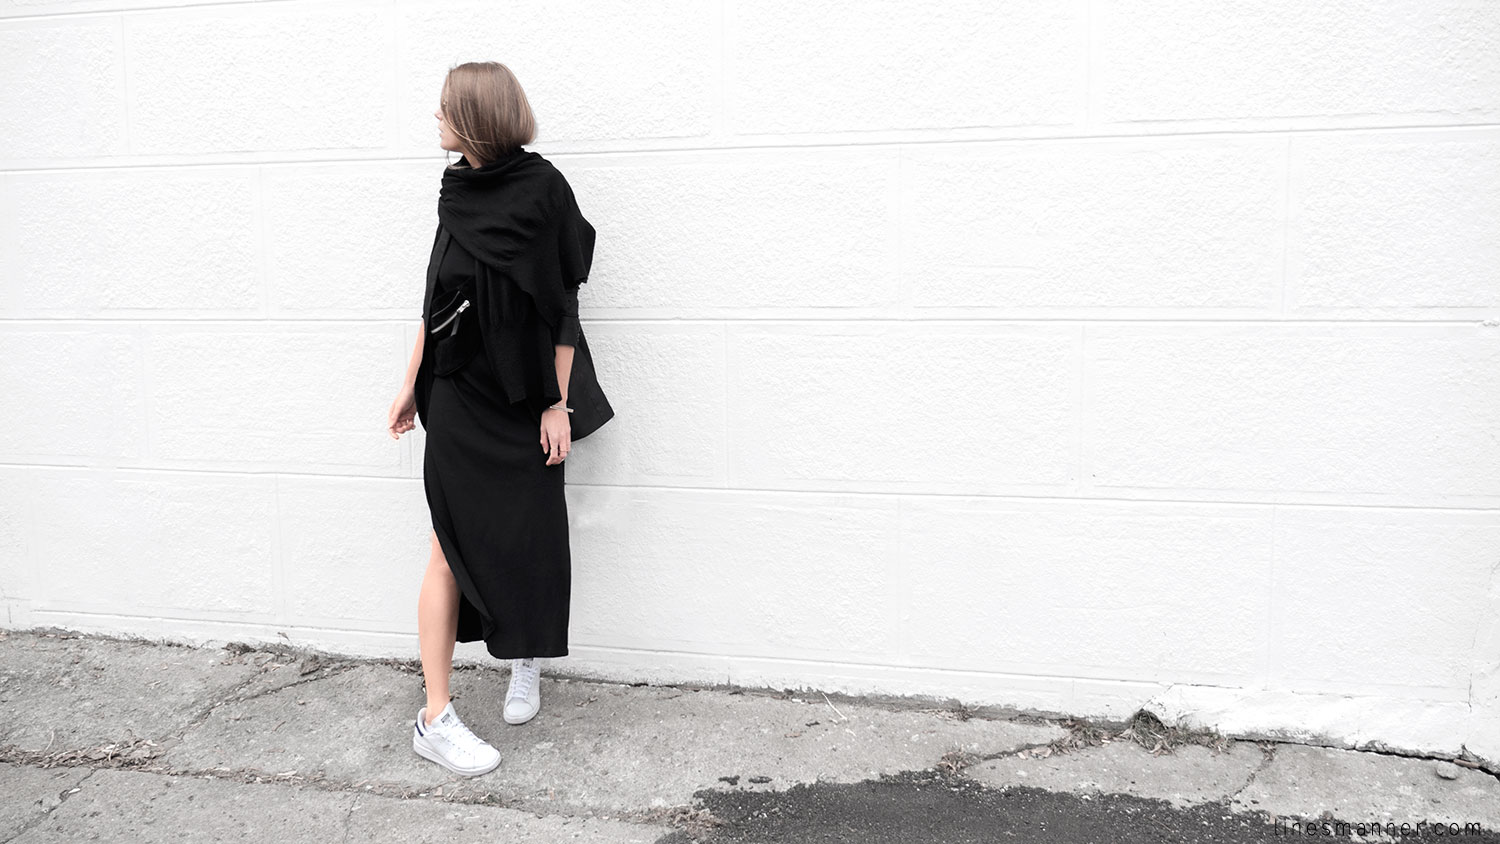 Lines-Manner-Black-Relaxed-Tone_on_Tone-Monochrome-Minimal-Sophistication-Comfort-Modern-Simplicity-Casual-Sporty_Luxe-Slit_Dress-Thrid_Form-Blazer-Essentials-Details-Basics-Timeless-Verstatile-Staple-Wardrobe-Sleek-Clean_Lines-All_Black_Everything-10